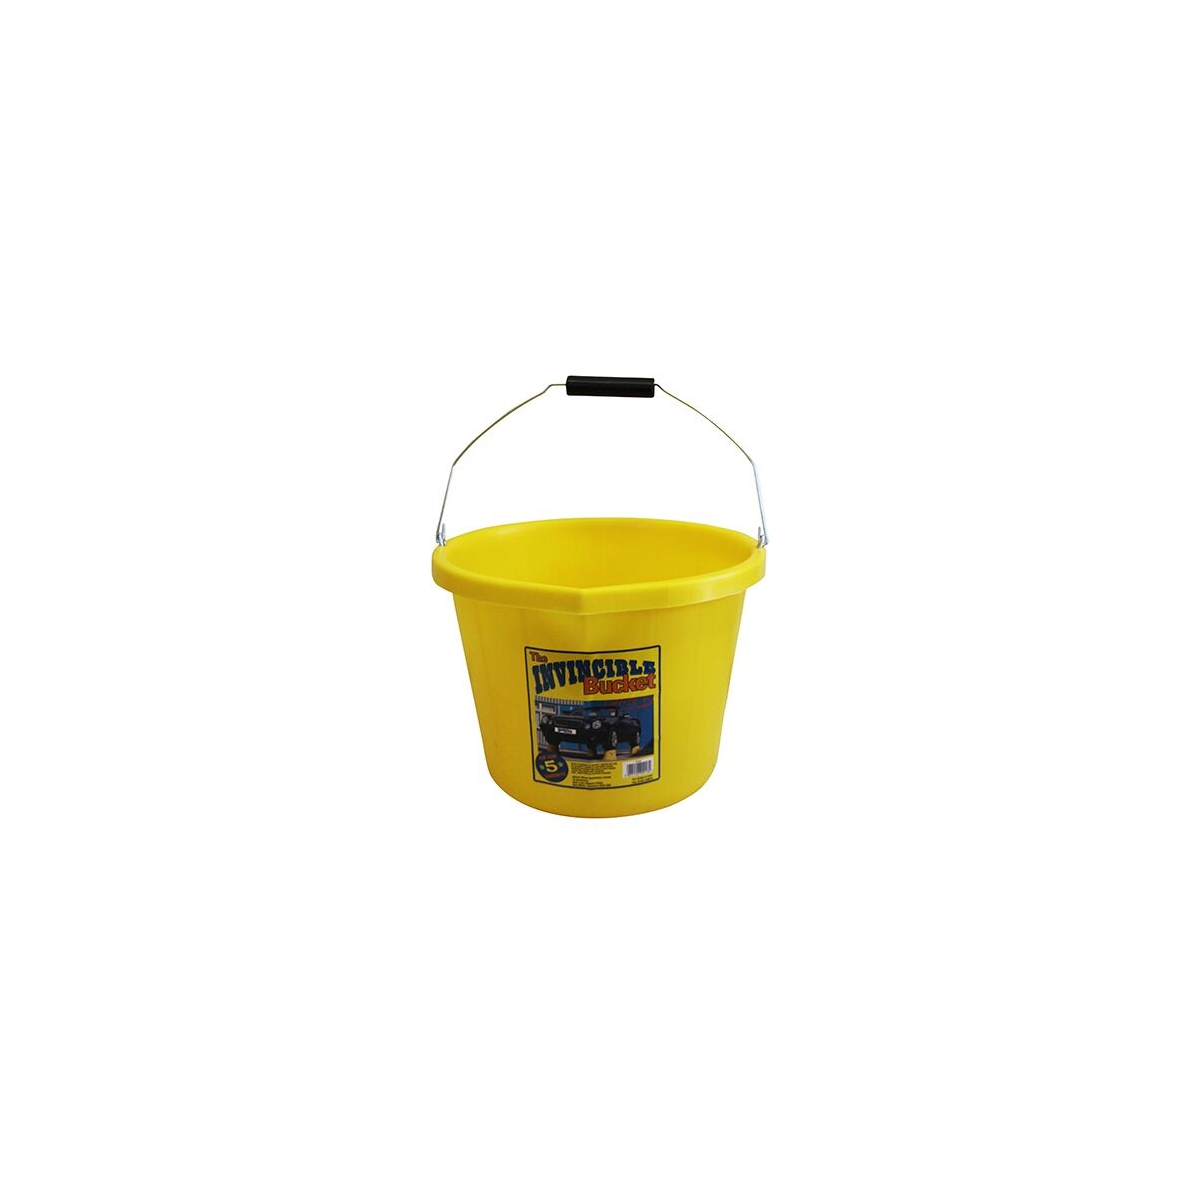 INVINCIBLE 3 GALLON YELLOW HEAVY DUTY BUCKET (PB1004-Y)